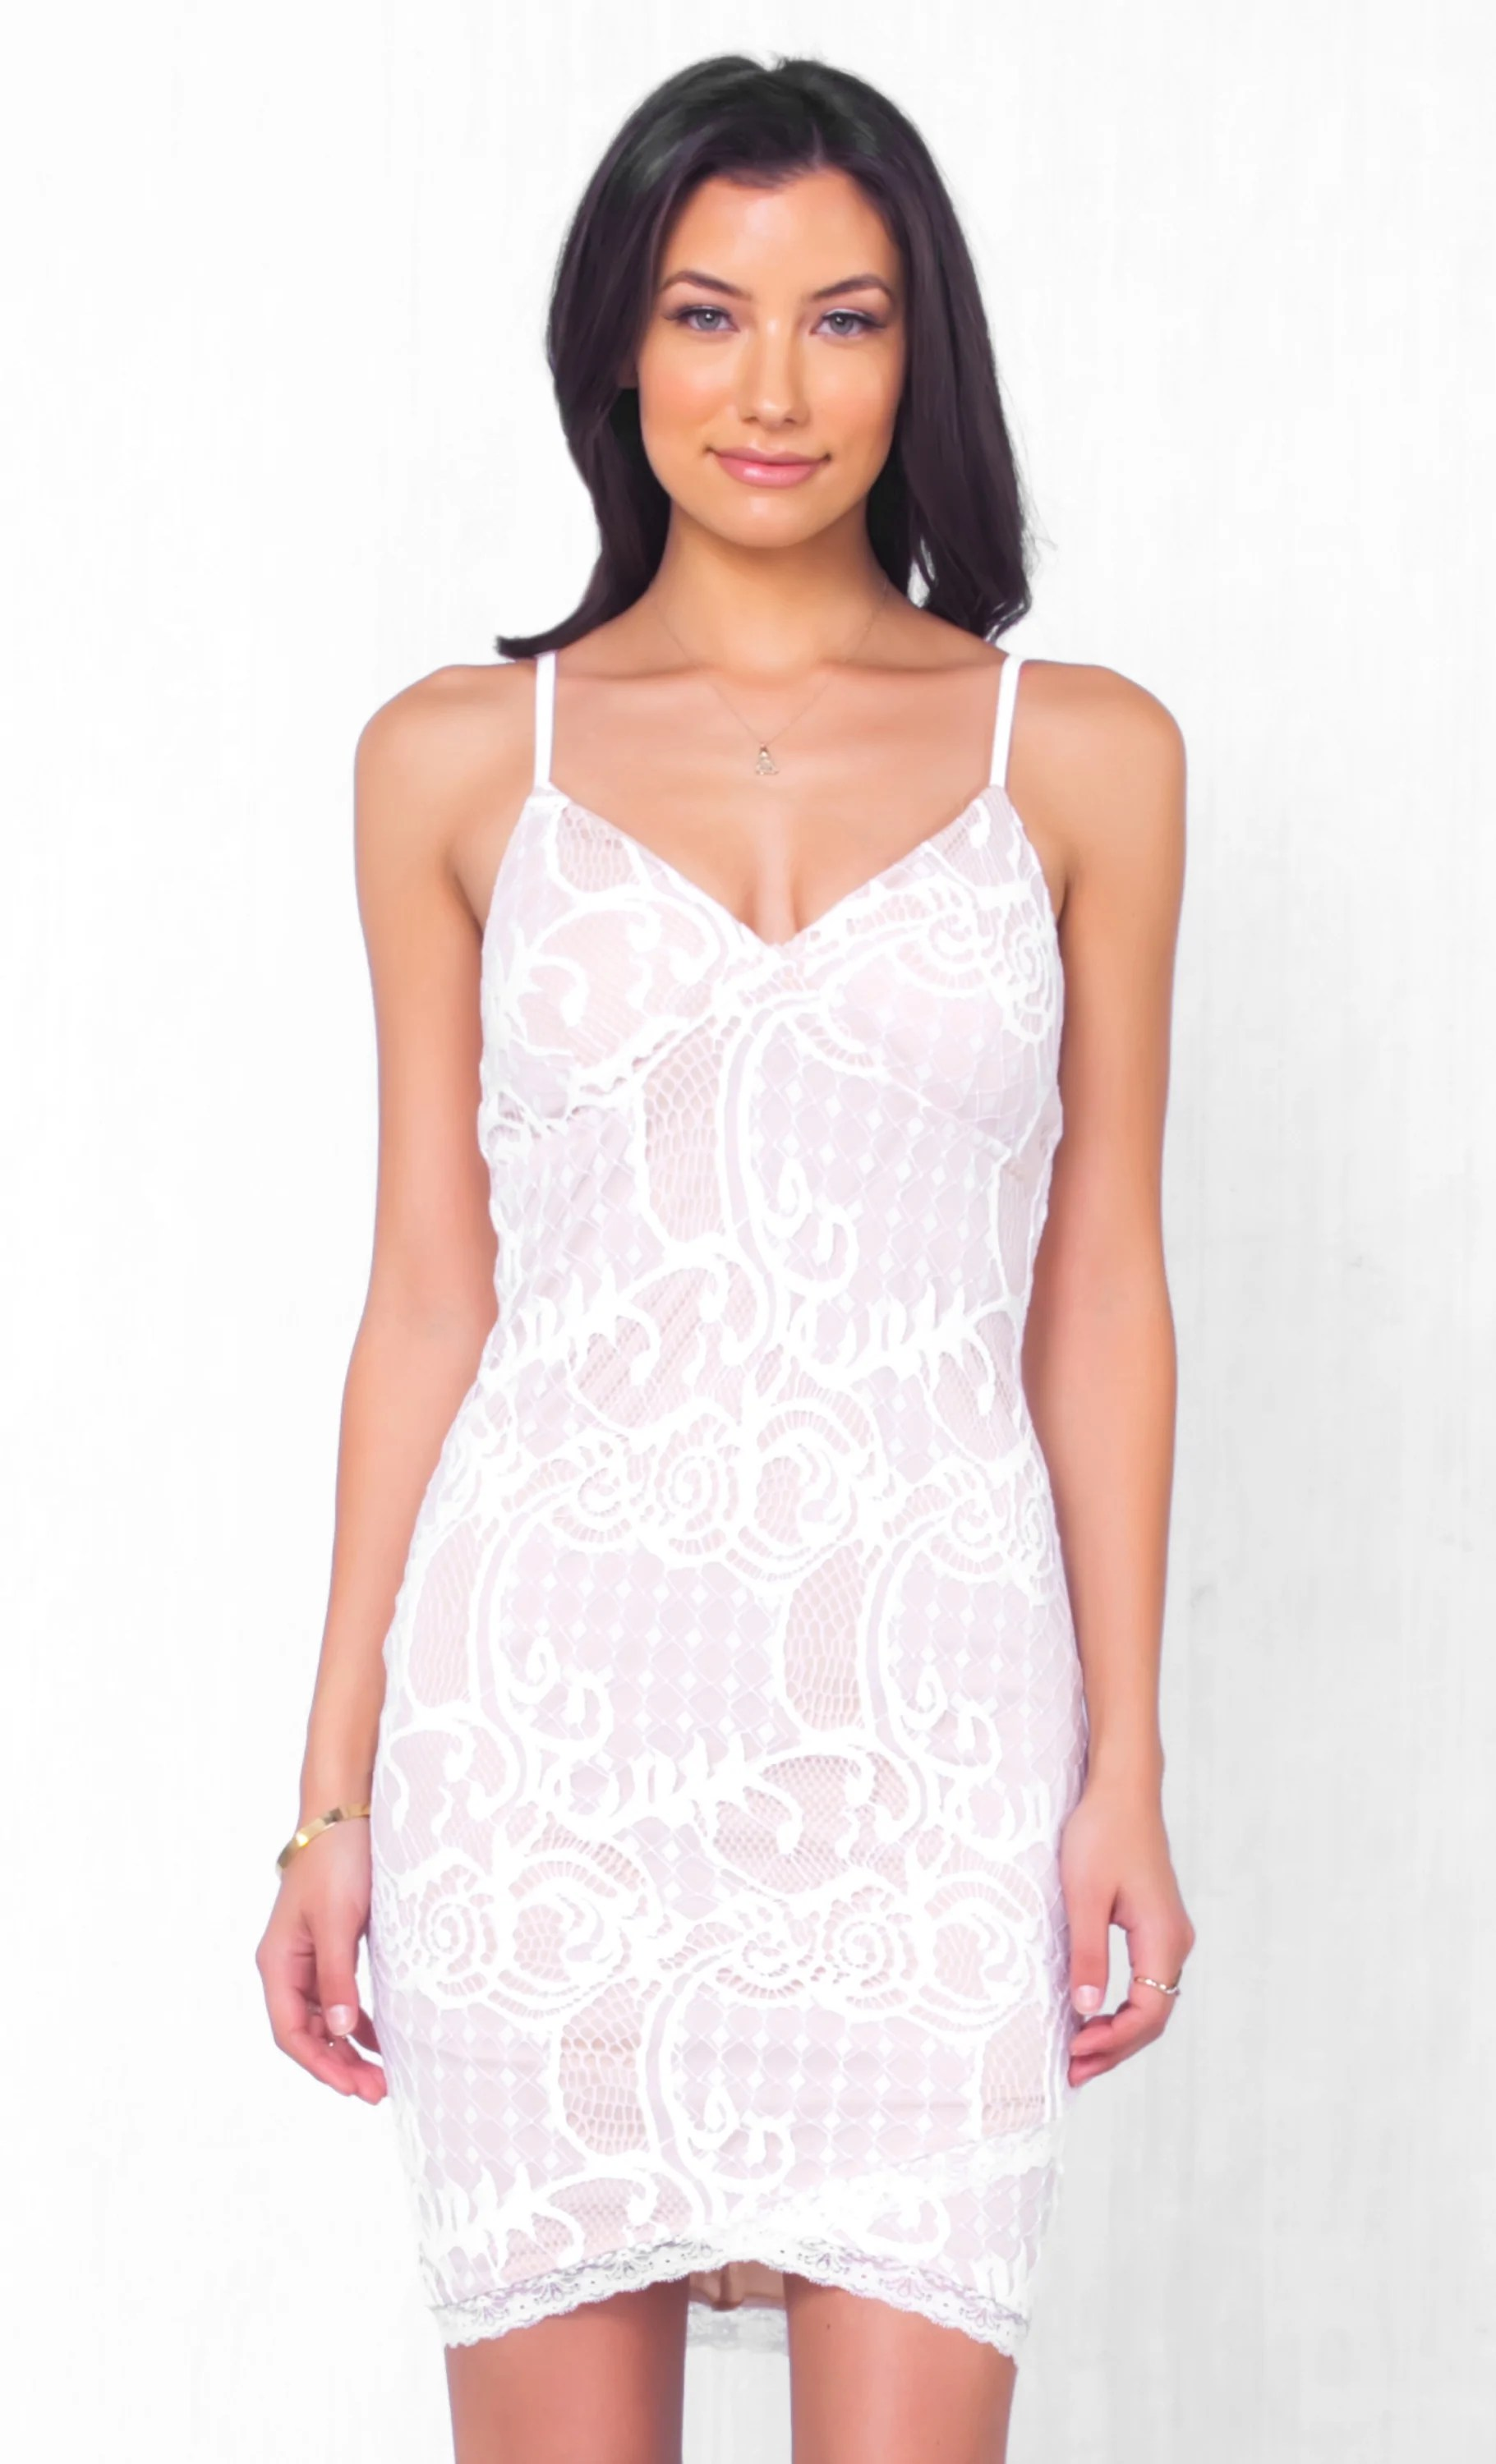 Indoor Toddlers Indie Indie Xo Will You Still Love Me Lace Sleeveless Spaghetti Strap Lace Dresses Midi Lace Dresses wedding dress White Lace Dresses